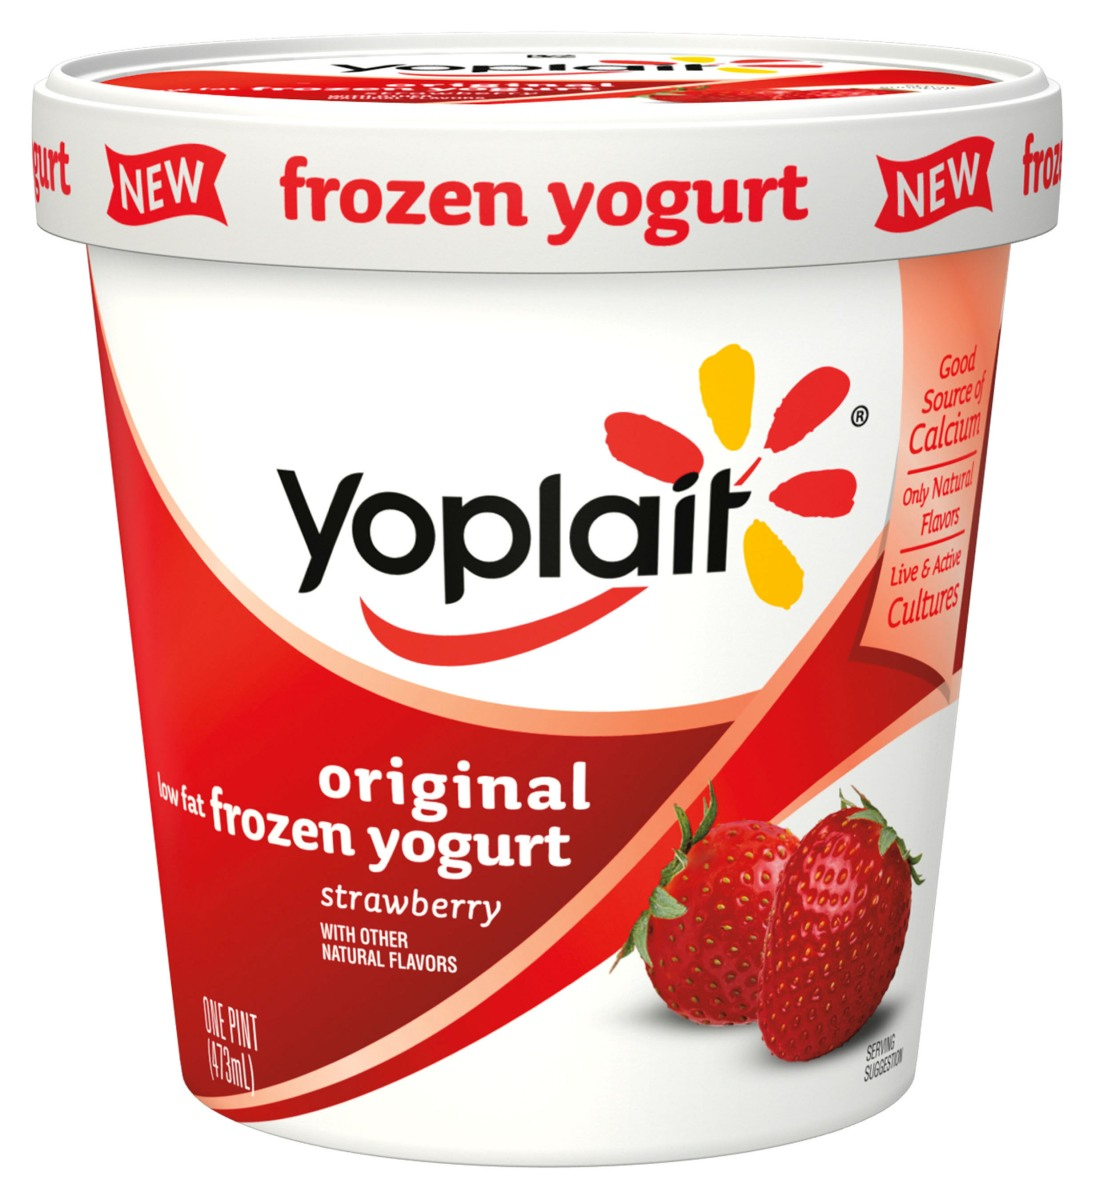 Go-GURT, also known as Yoplait Tubes in Canada and as Frubes in the United Kingdom, is an American brand of low-fat yogurt for children. It is squeezed out of a tube directly into the mouth, instead of being eaten with a spoon. It was introduced by General Mills licensed Yoplait in as the first yogurt made specifically for kids.